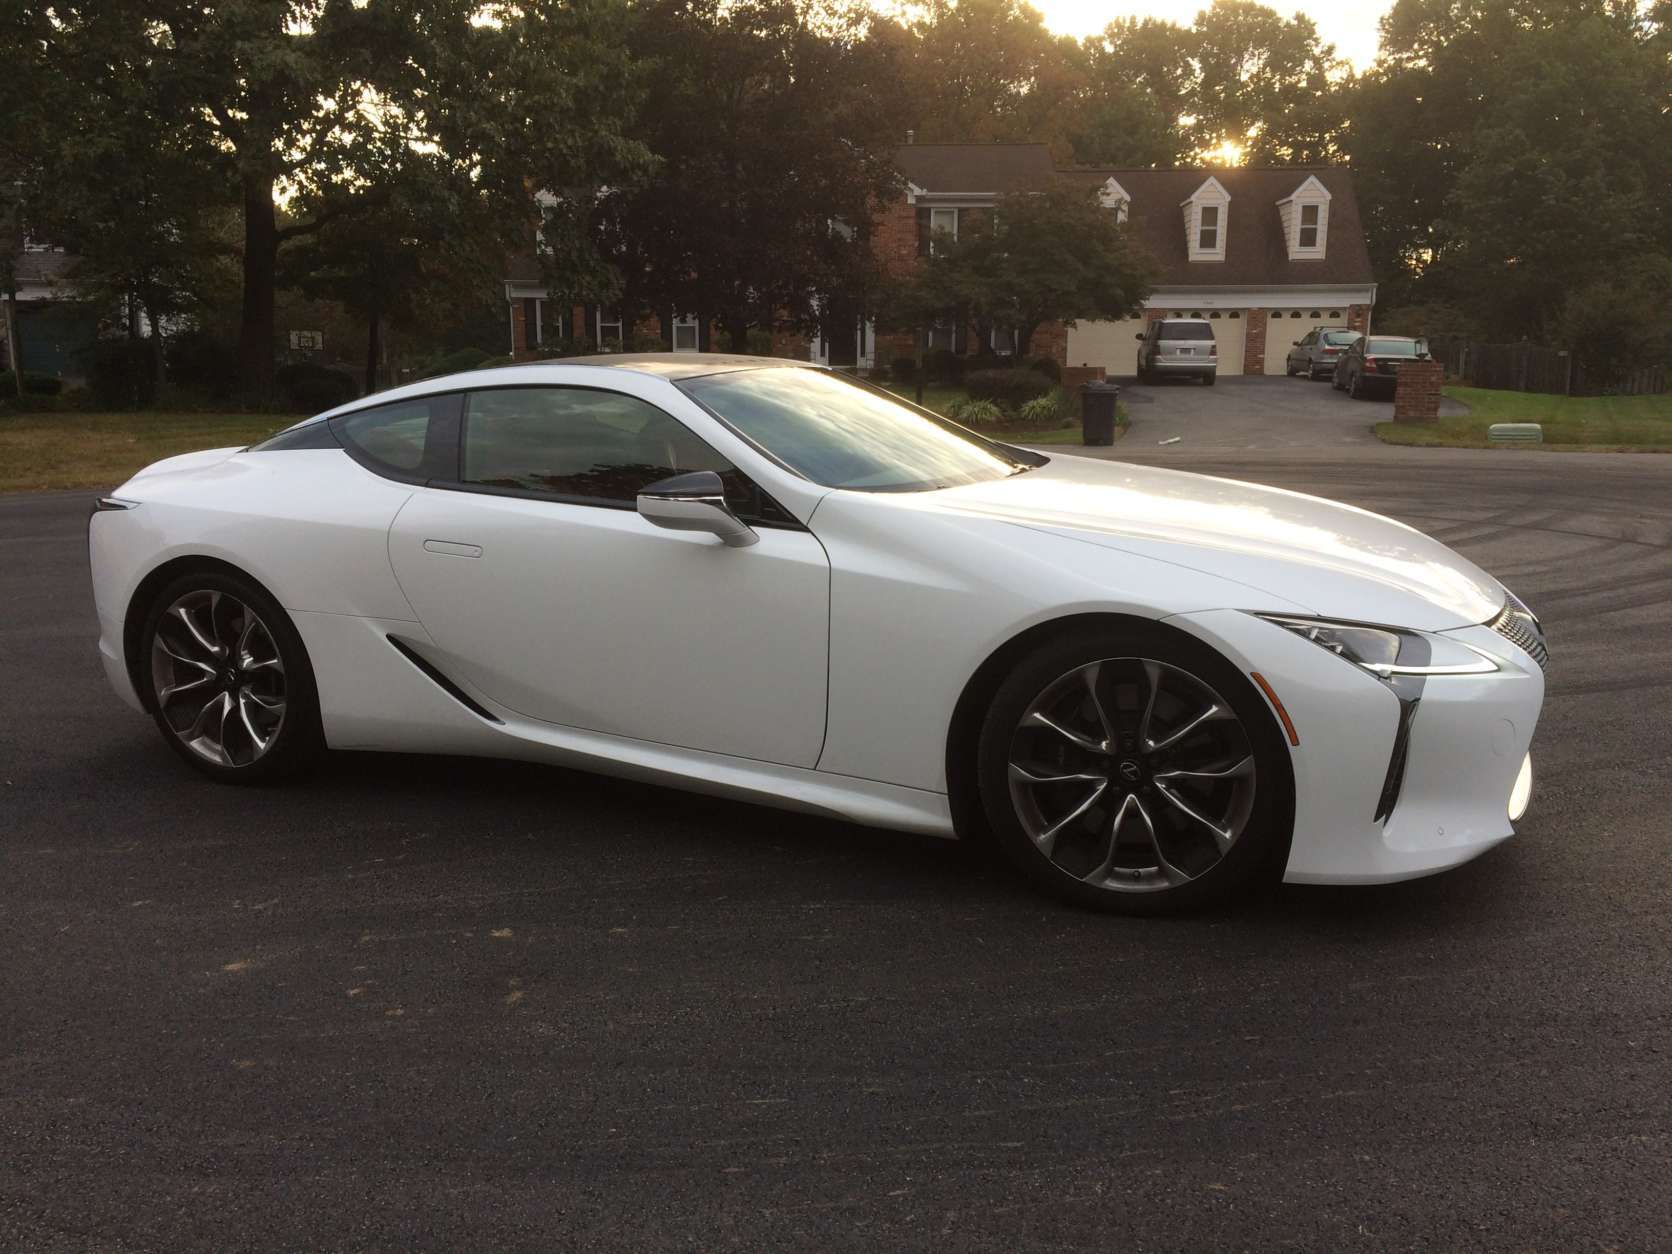 The Lexus LC 500 coupe's starting price is around $93,000